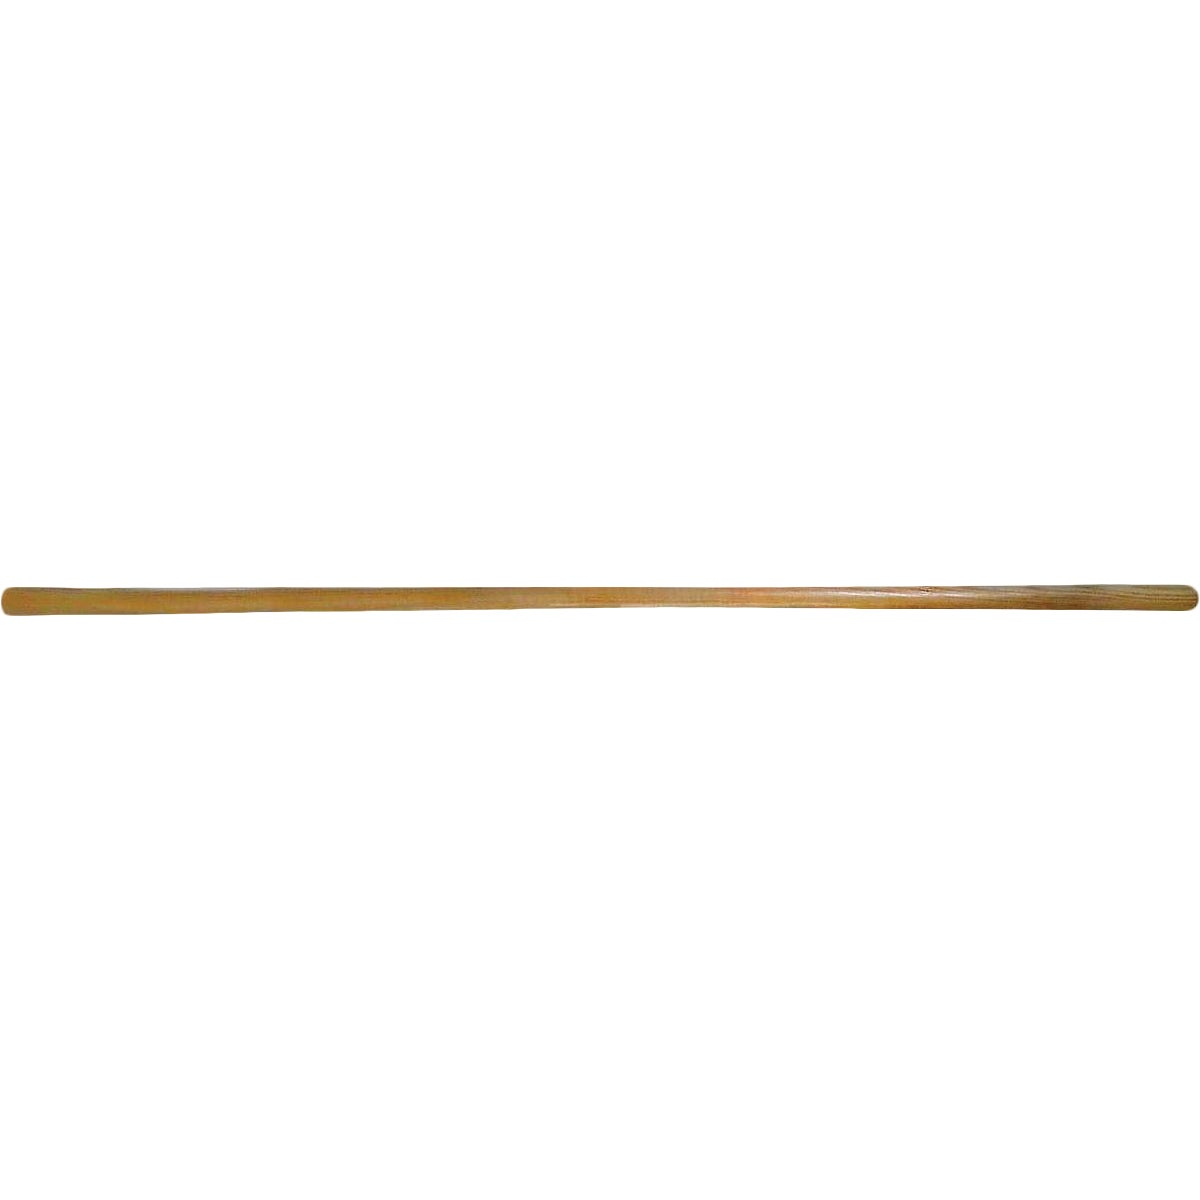 "60"" HOE/FIRE RAKE HANDLE - 66687 by Seymour Mfg Co"